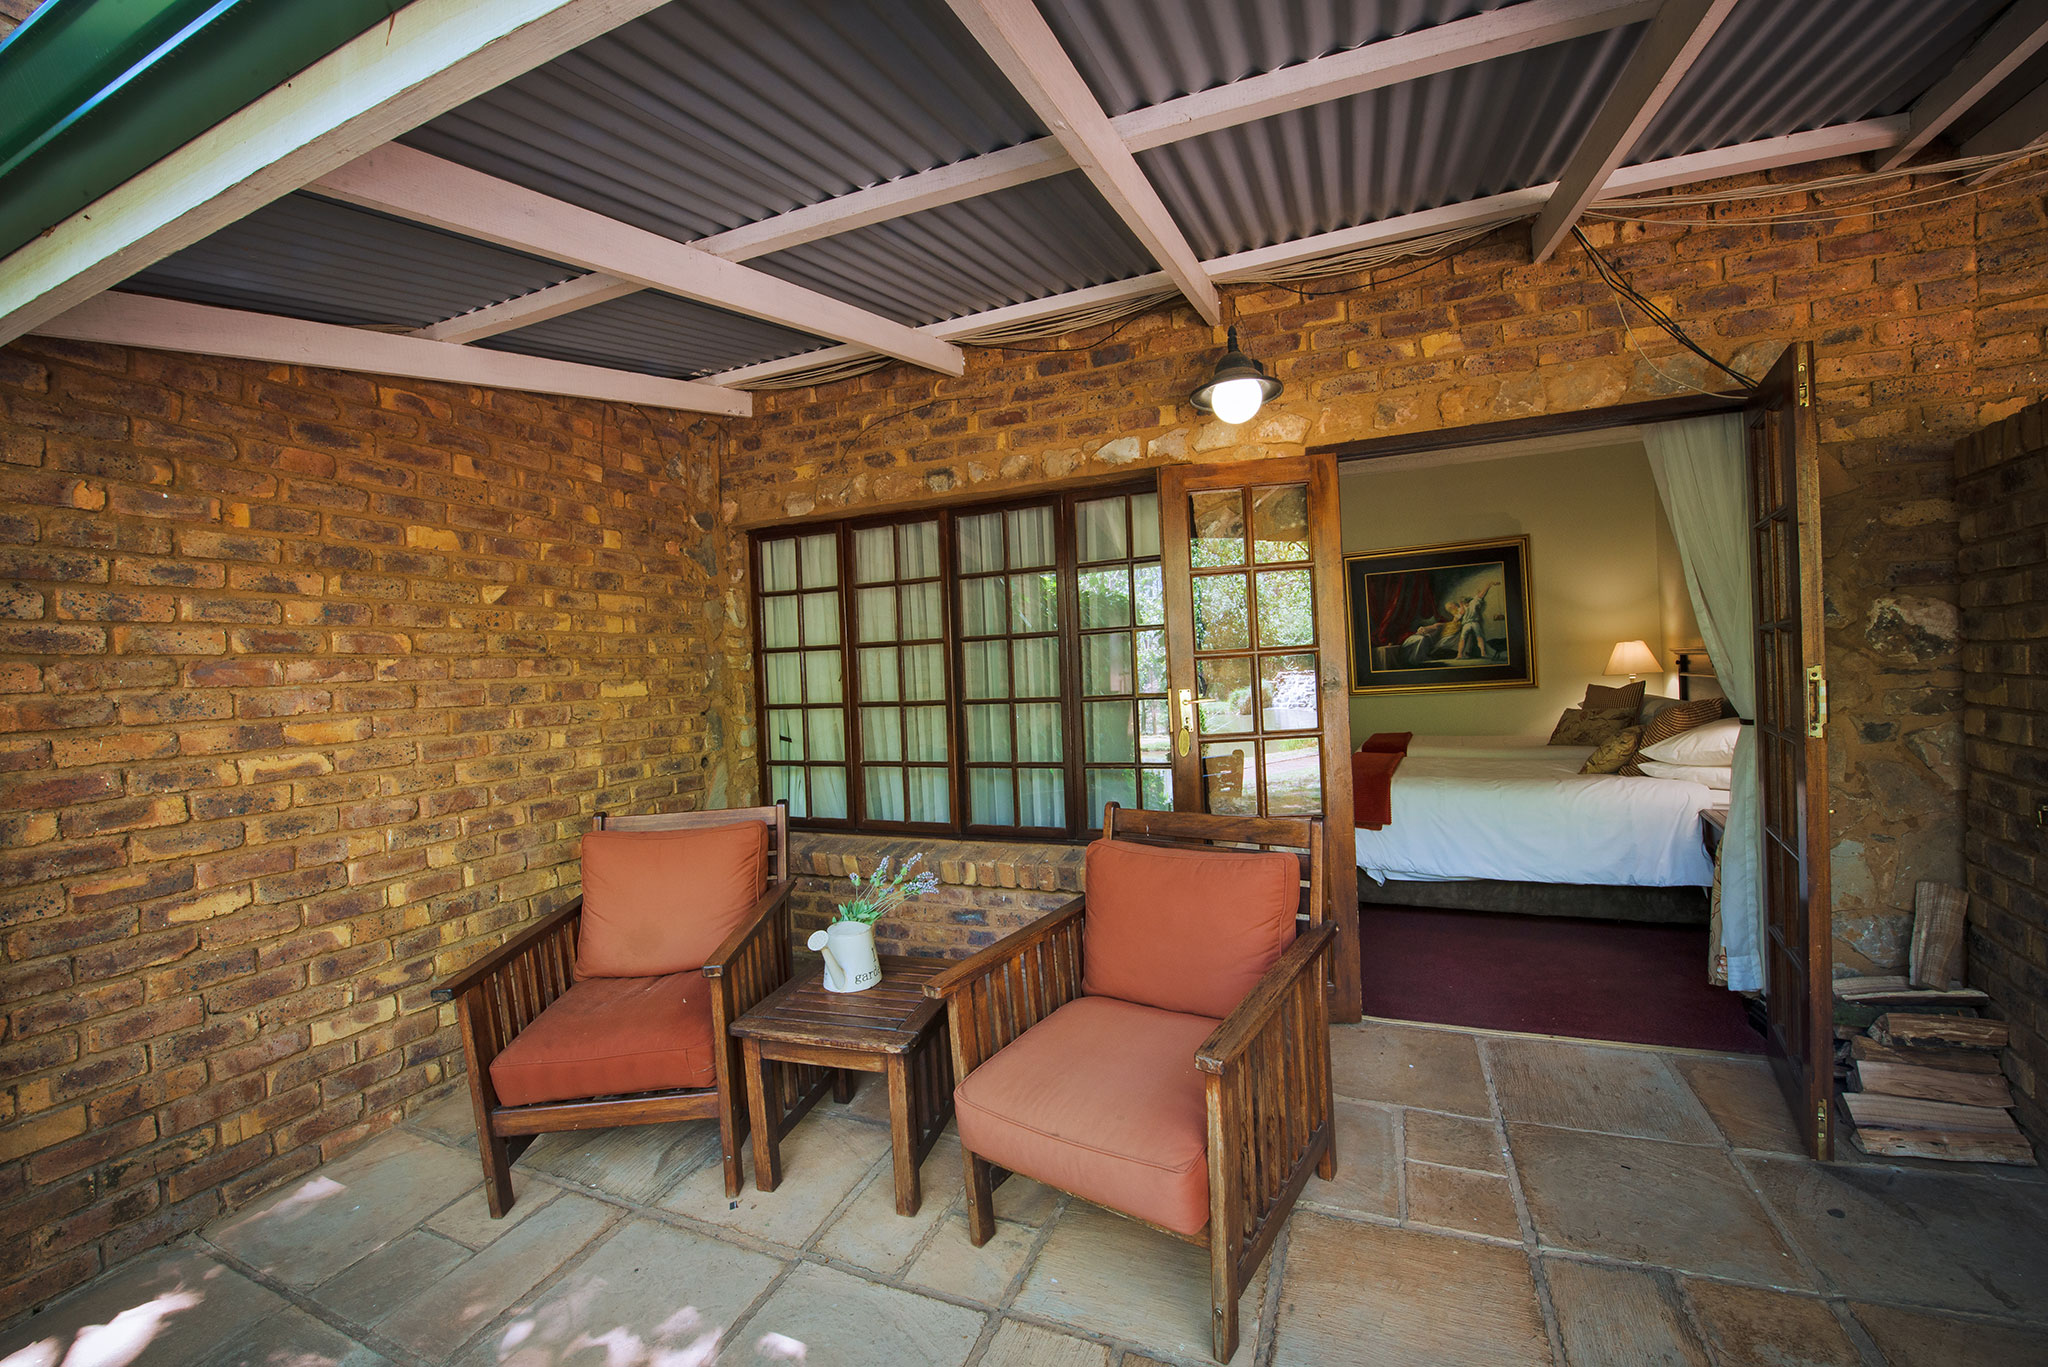 Country Lodge Suites: Enjoy some leisure time overlooking the beautiful resort scenery